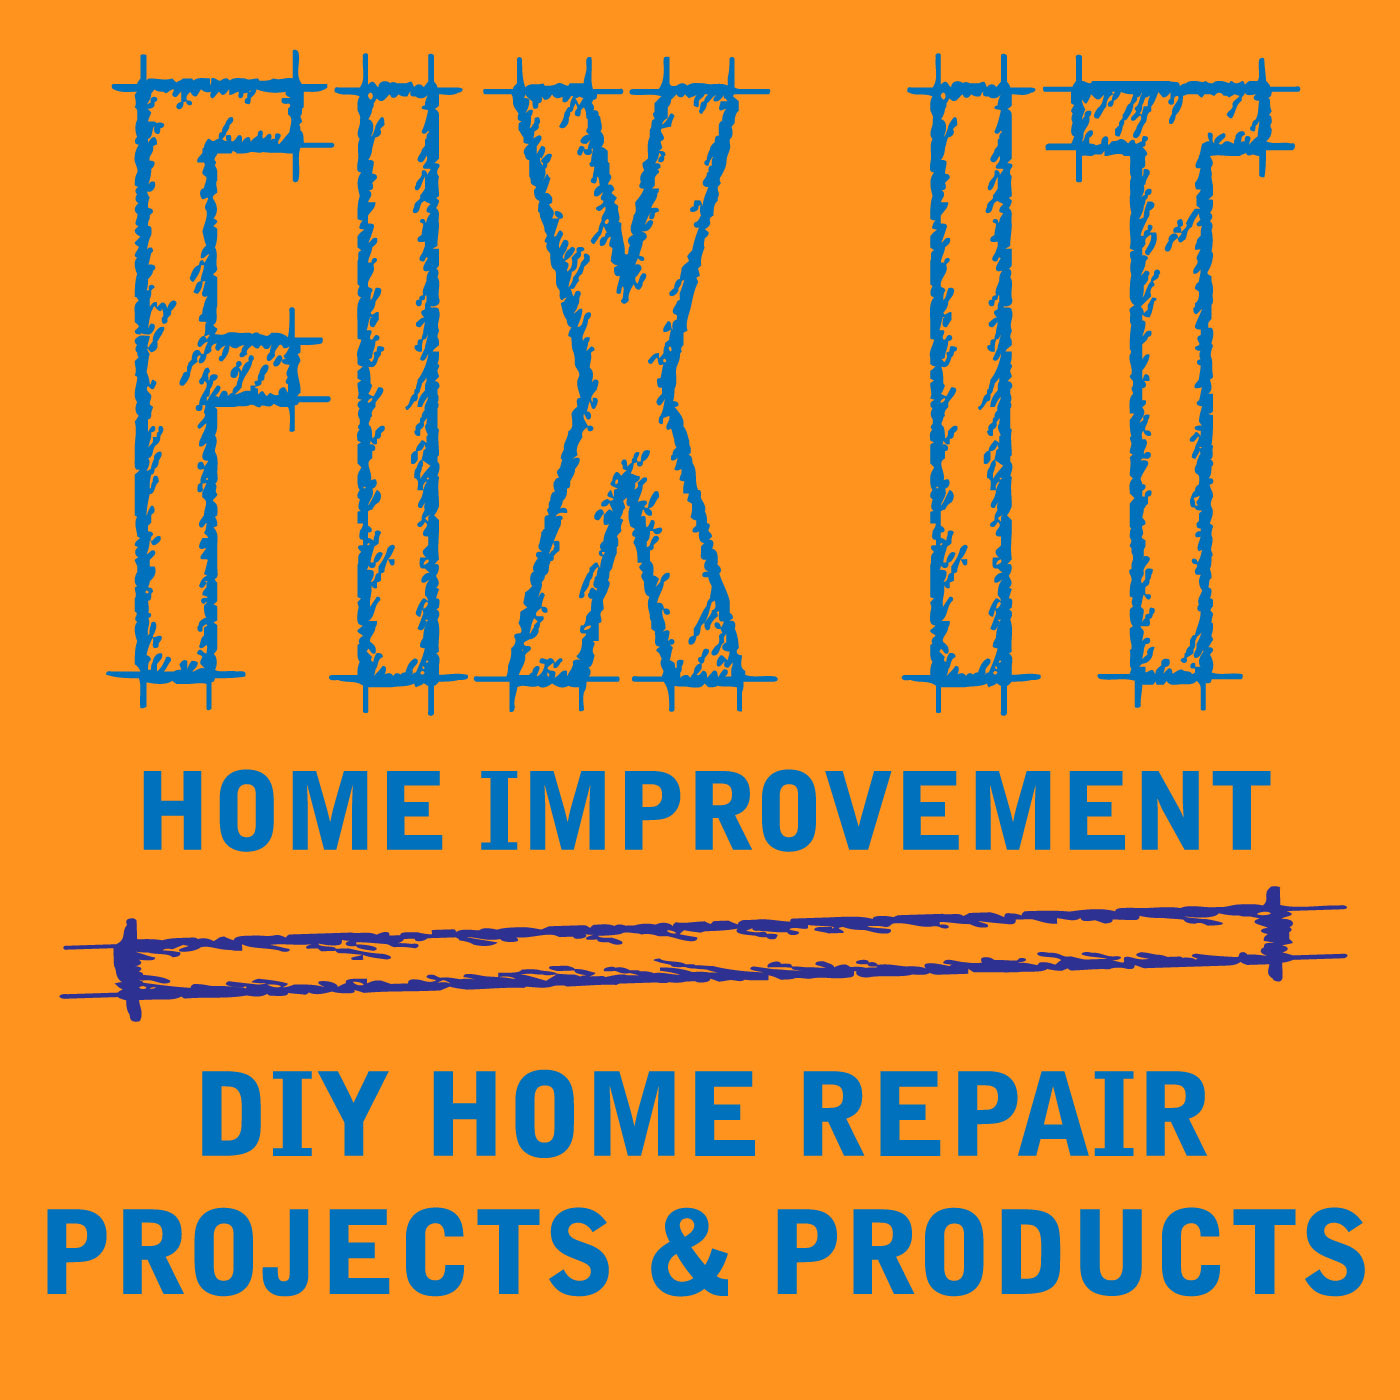 Book 6 - Home Improvement e-book